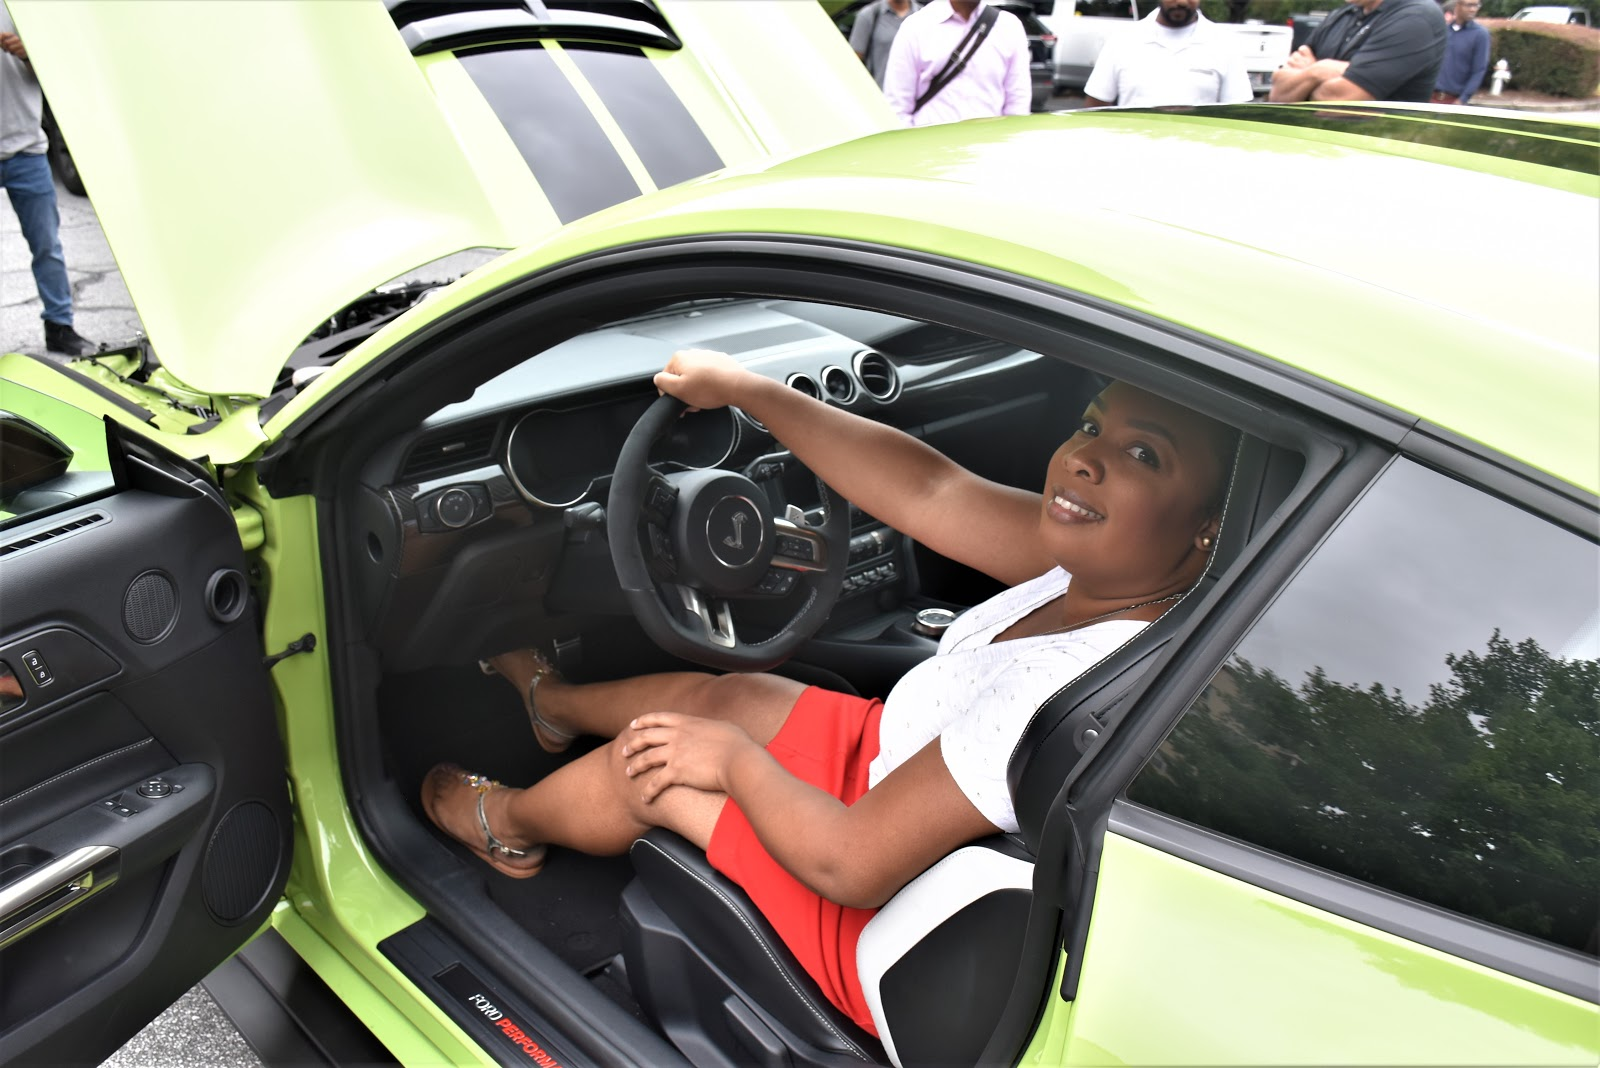 See How I Celebrated Ford Mustang's 55th Anniversary